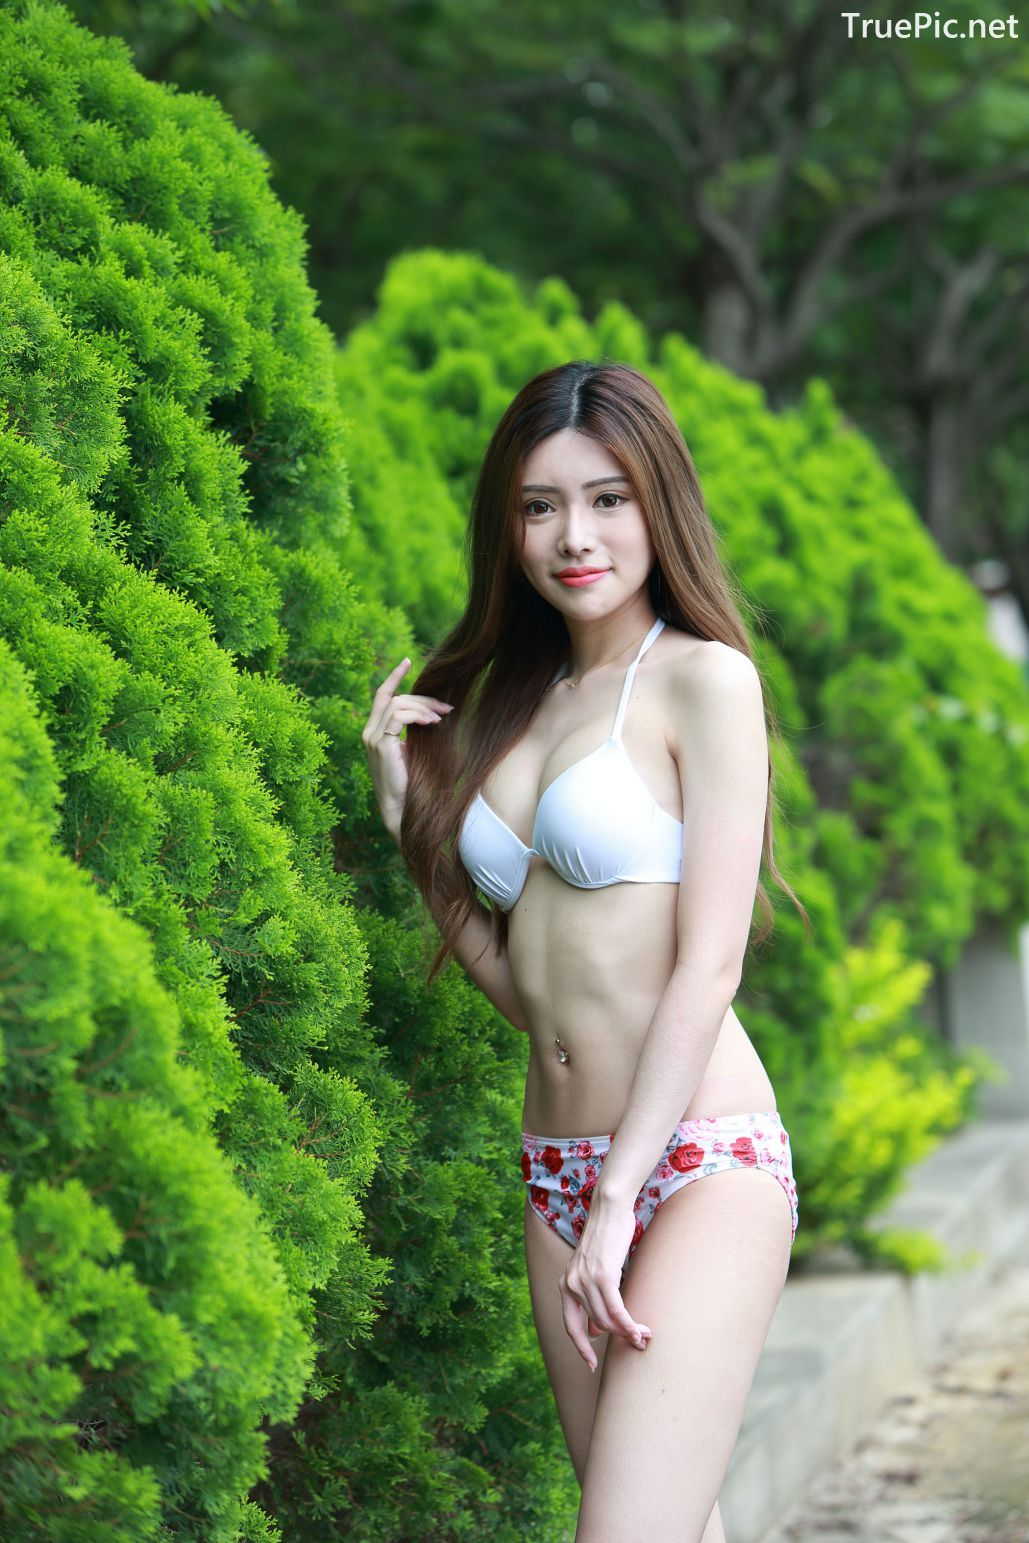 Image-Taiwanese-Model-承容-Lovely-And-Beautiful-Bikini-Baby-TruePic.net- Picture-3